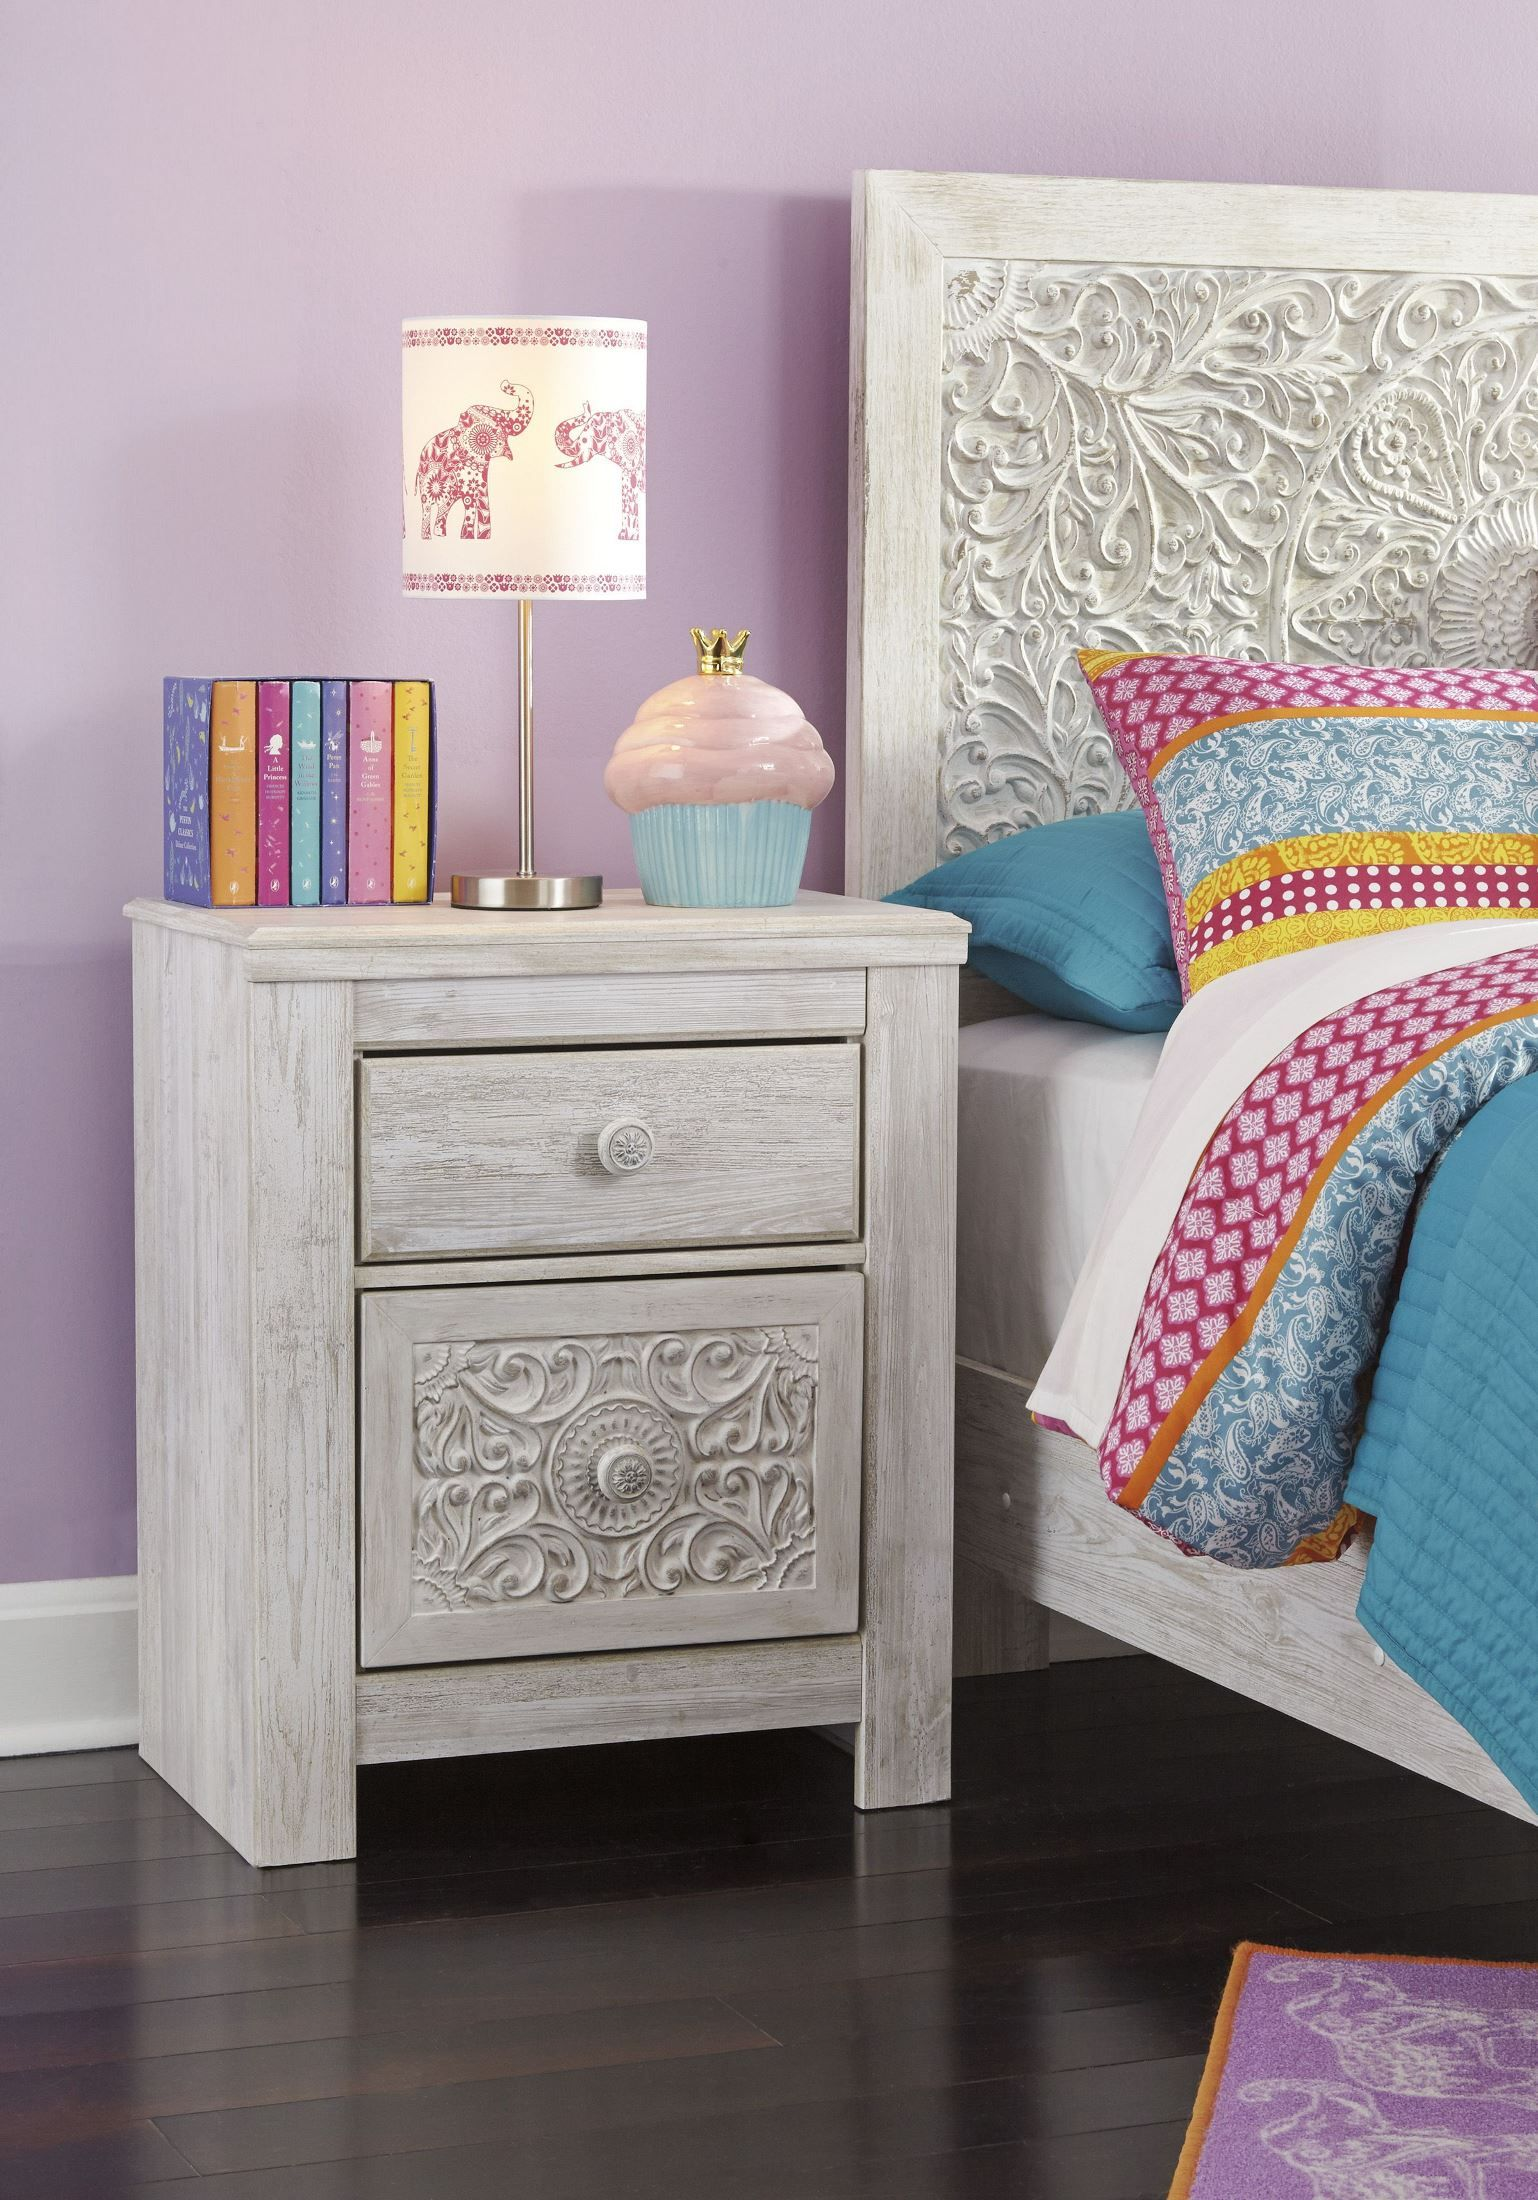 Paxberry Whitewash Two Drawer Nightstand ASLB18192 in